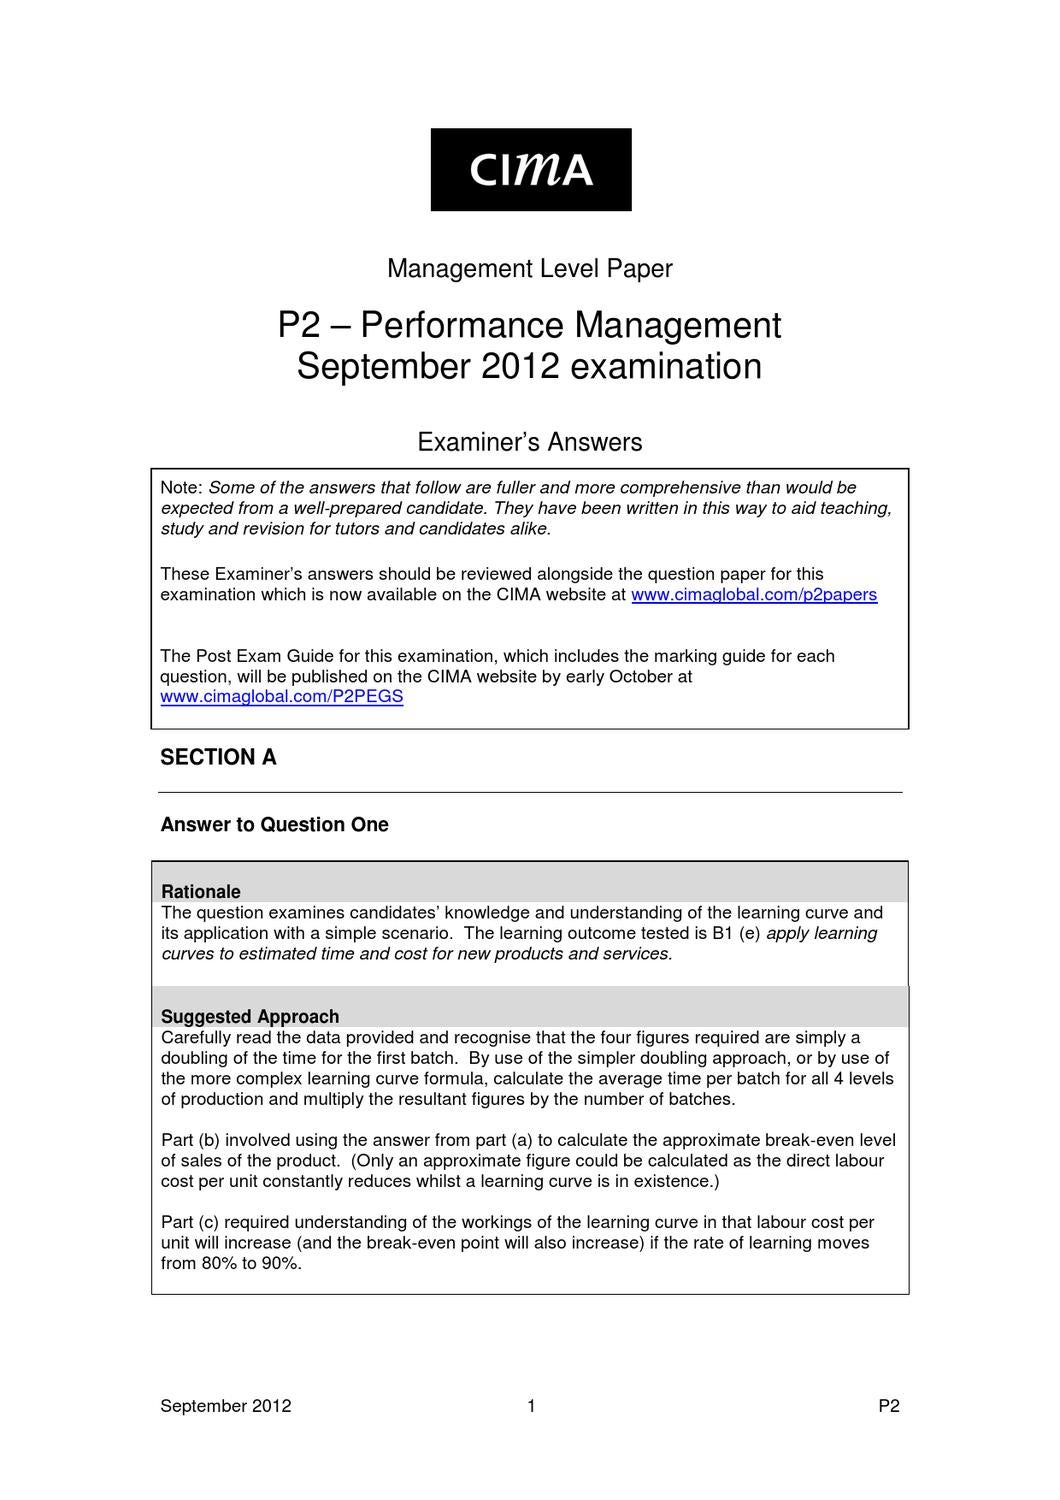 P2 September 2012 answers by Chartered Institute of